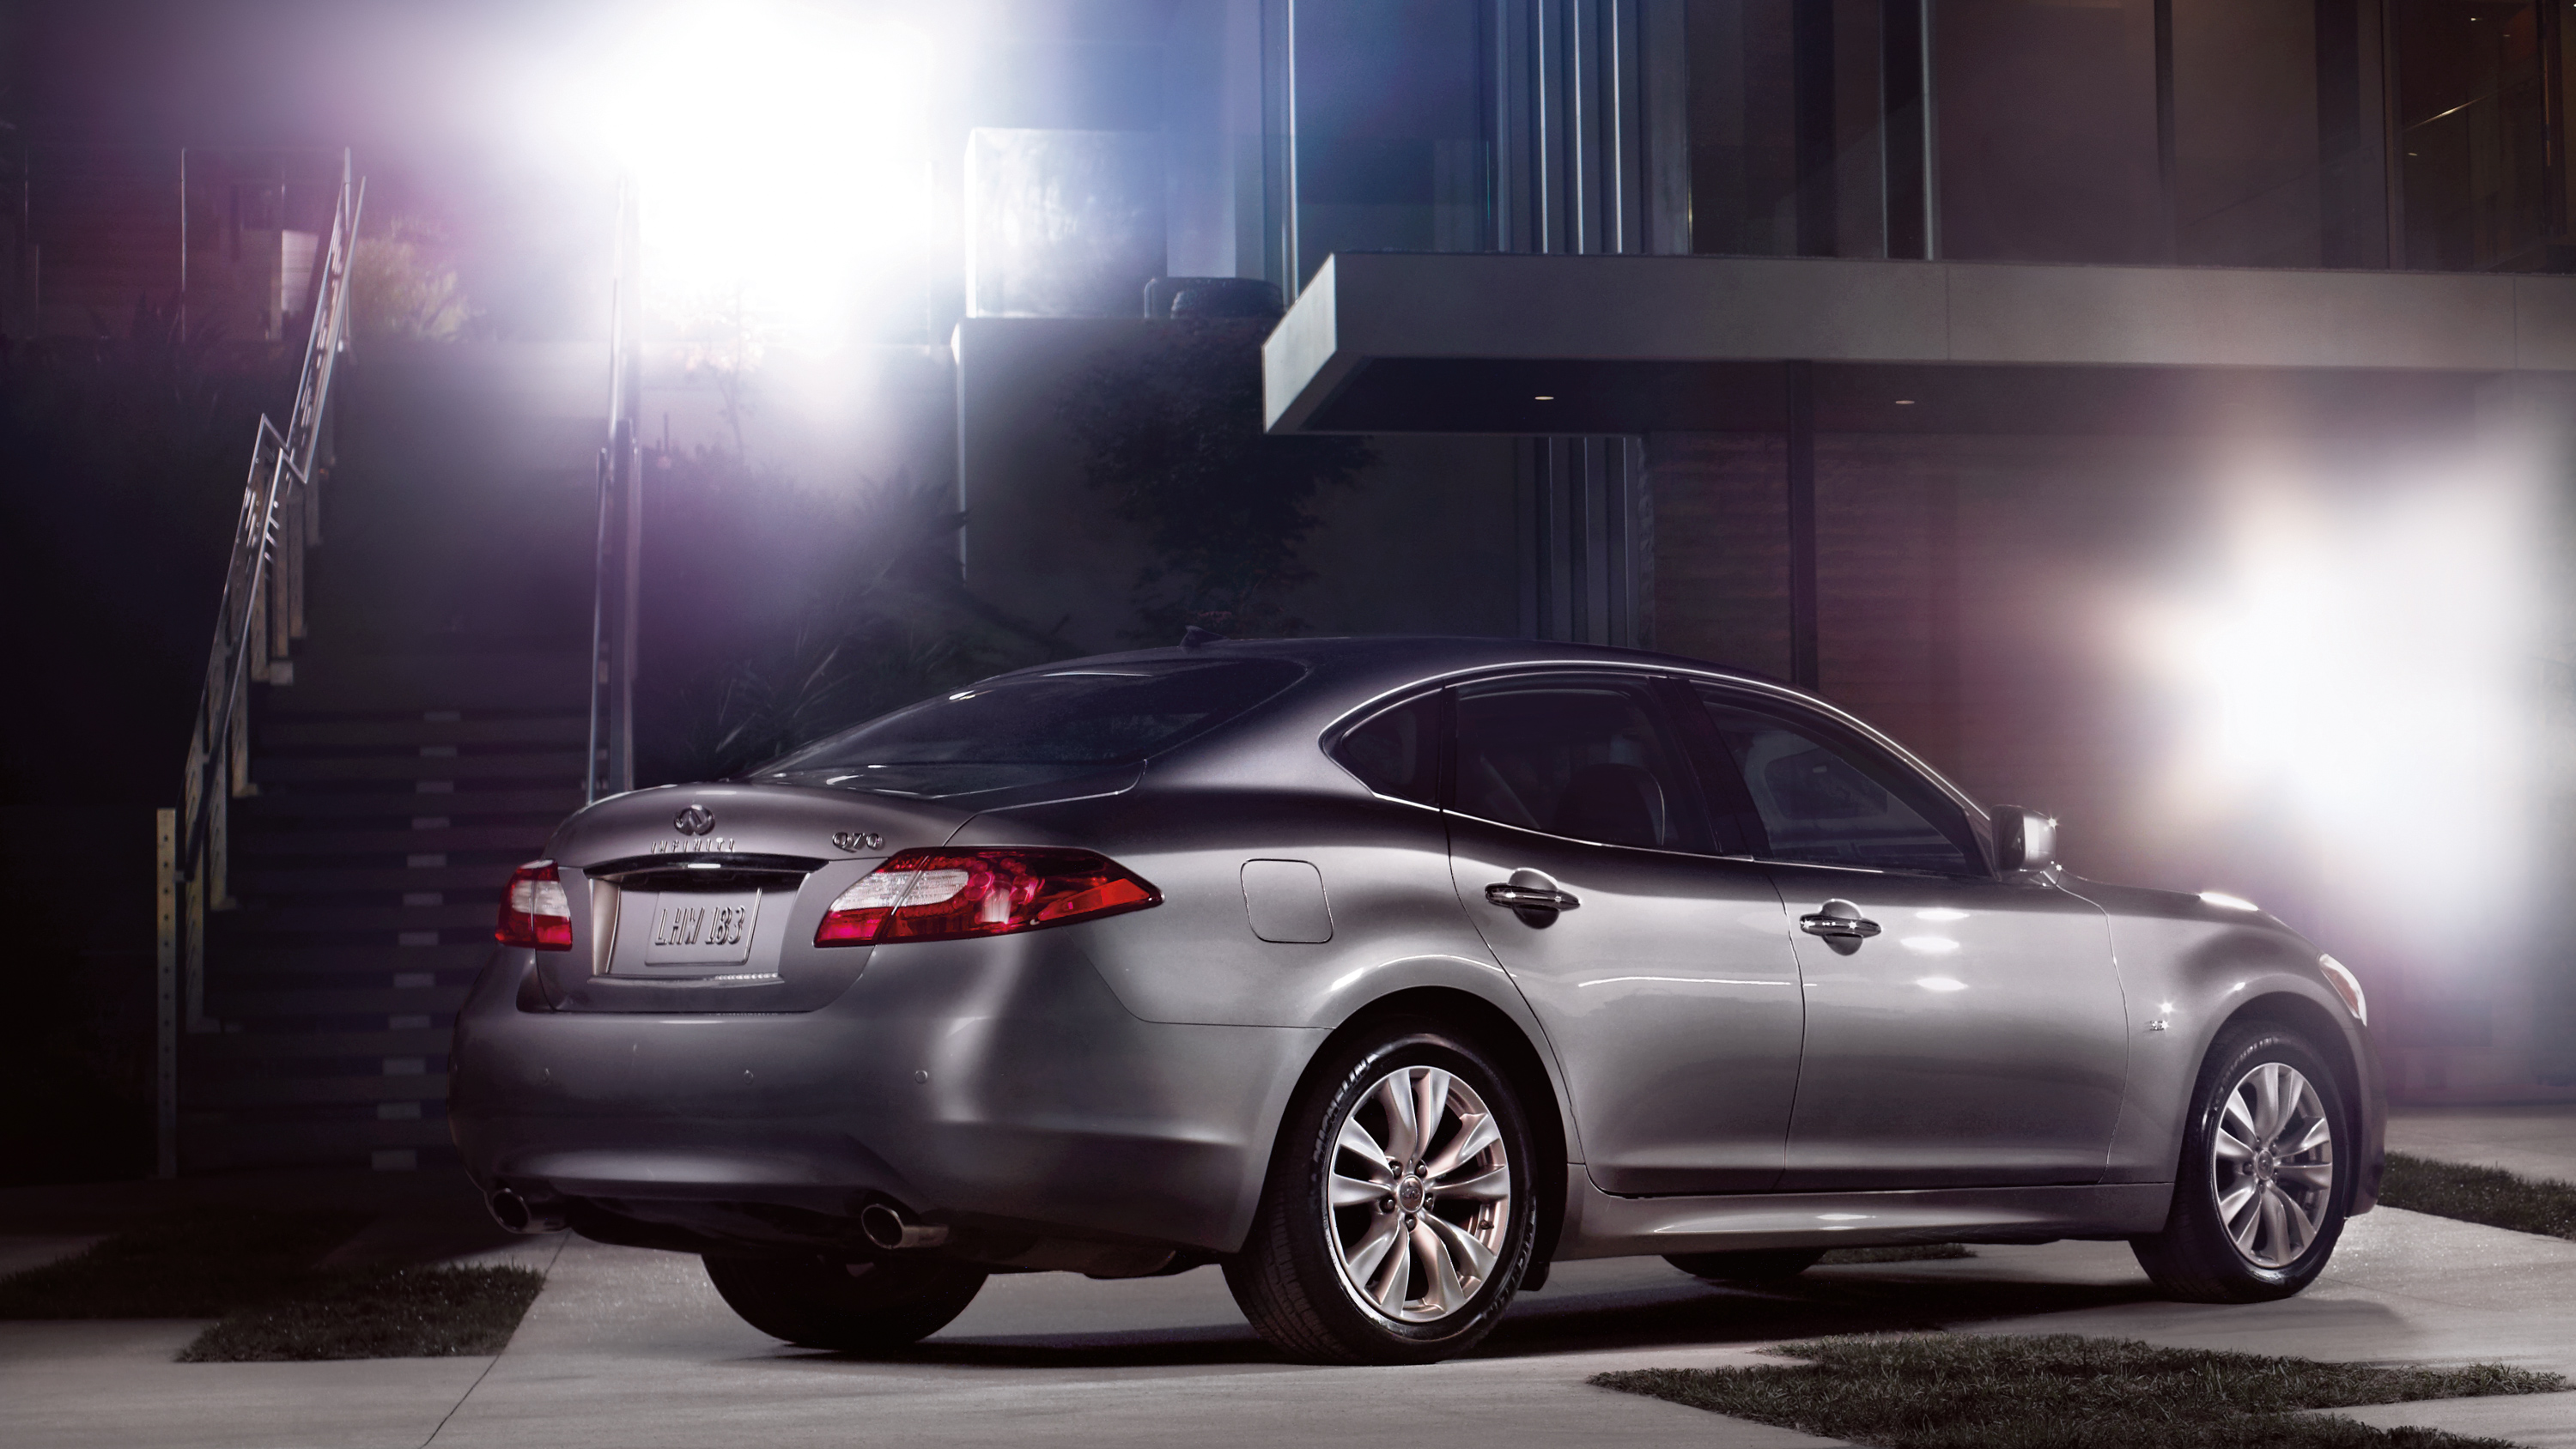 infinity lease exterior infiniti price gallery offers suv san main new ca francisco image